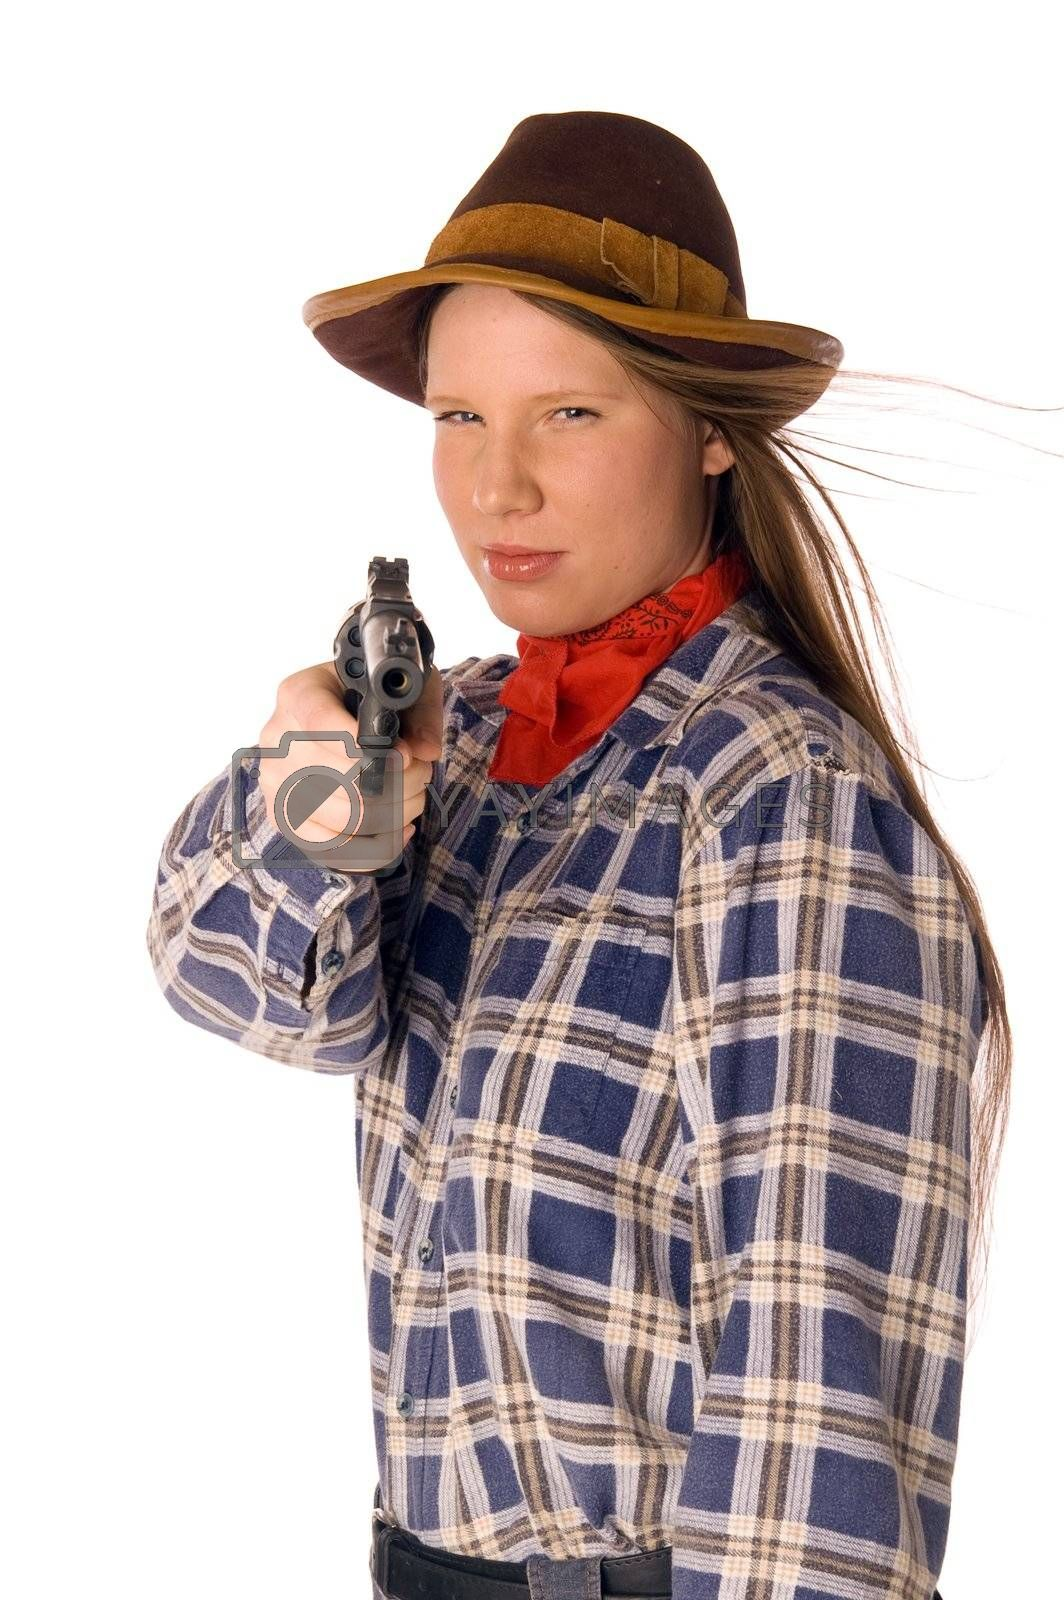 Smiling cowgirl with gun aim at someone by lilsla